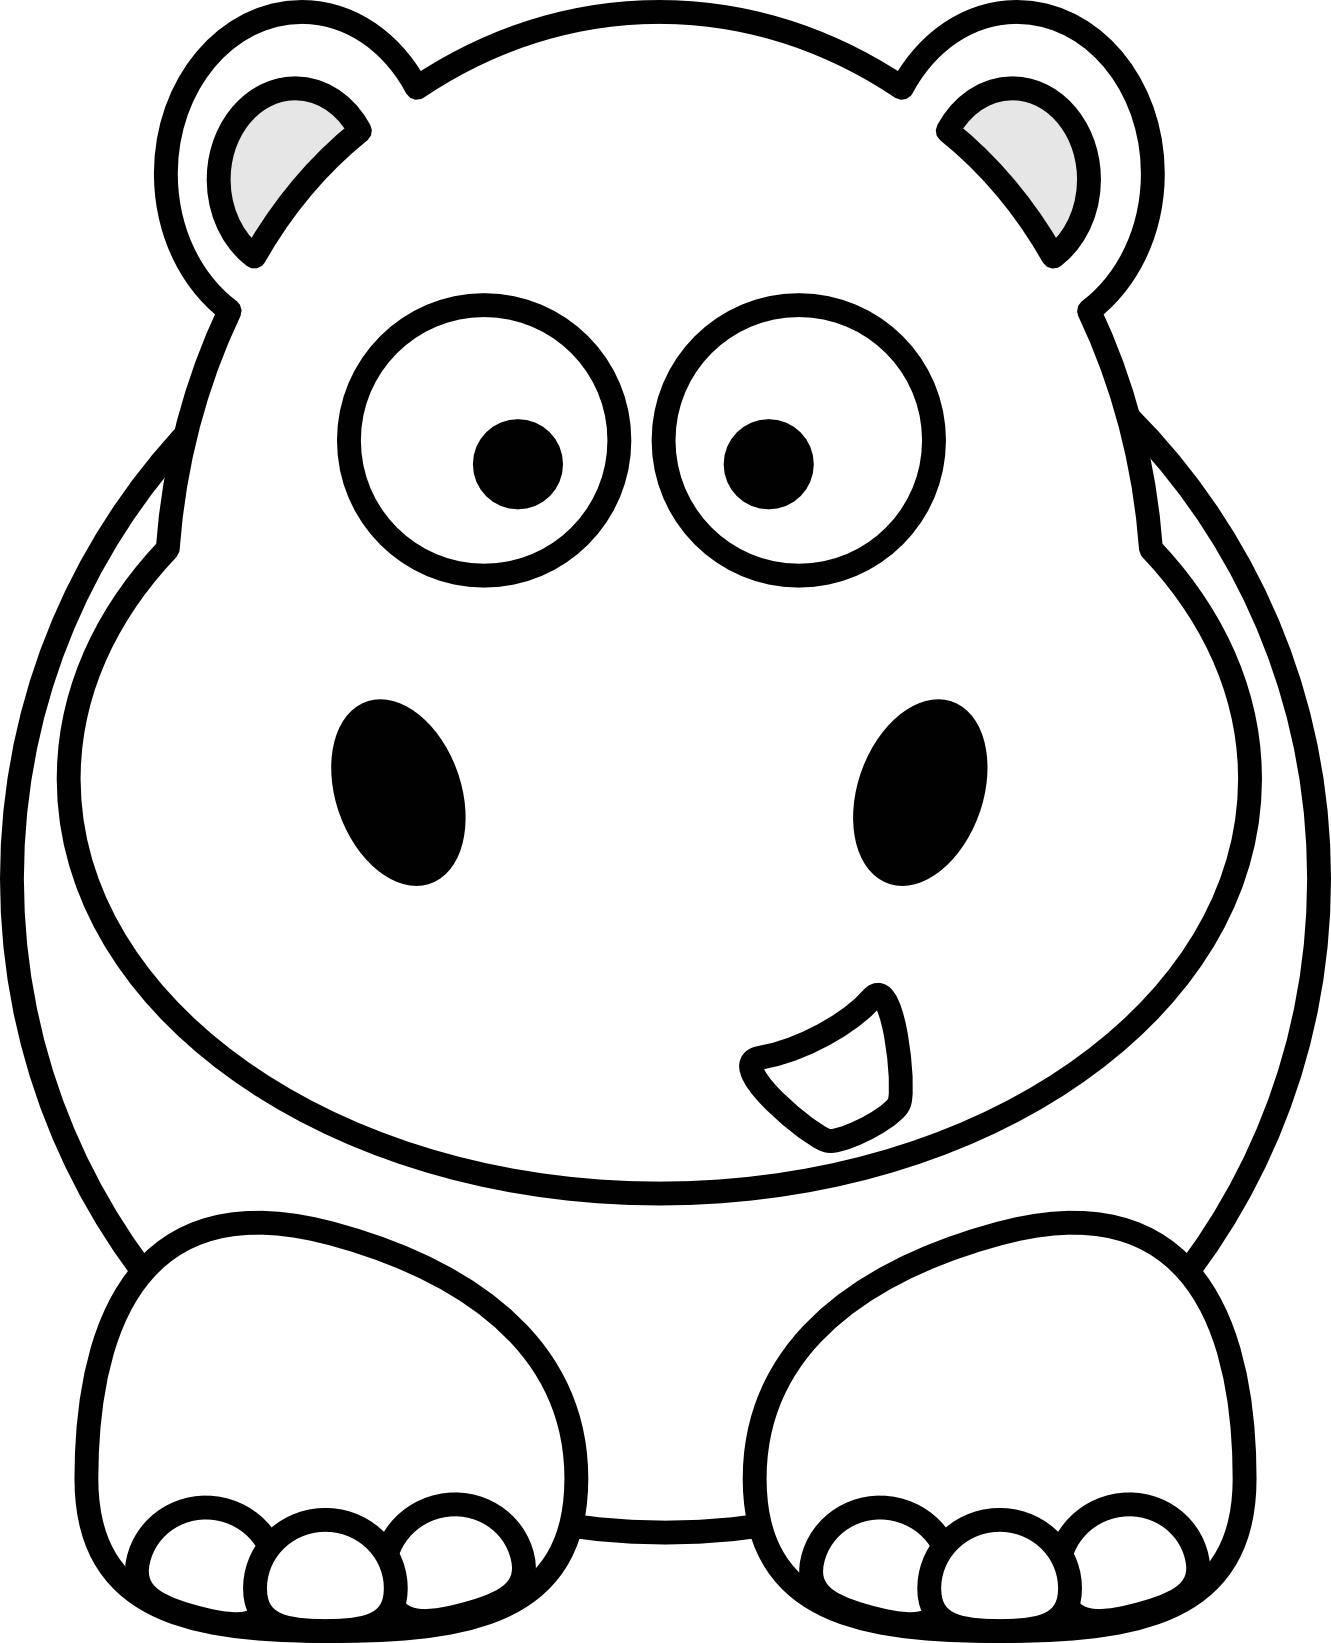 Animals clipart black and white. Animal panda free images